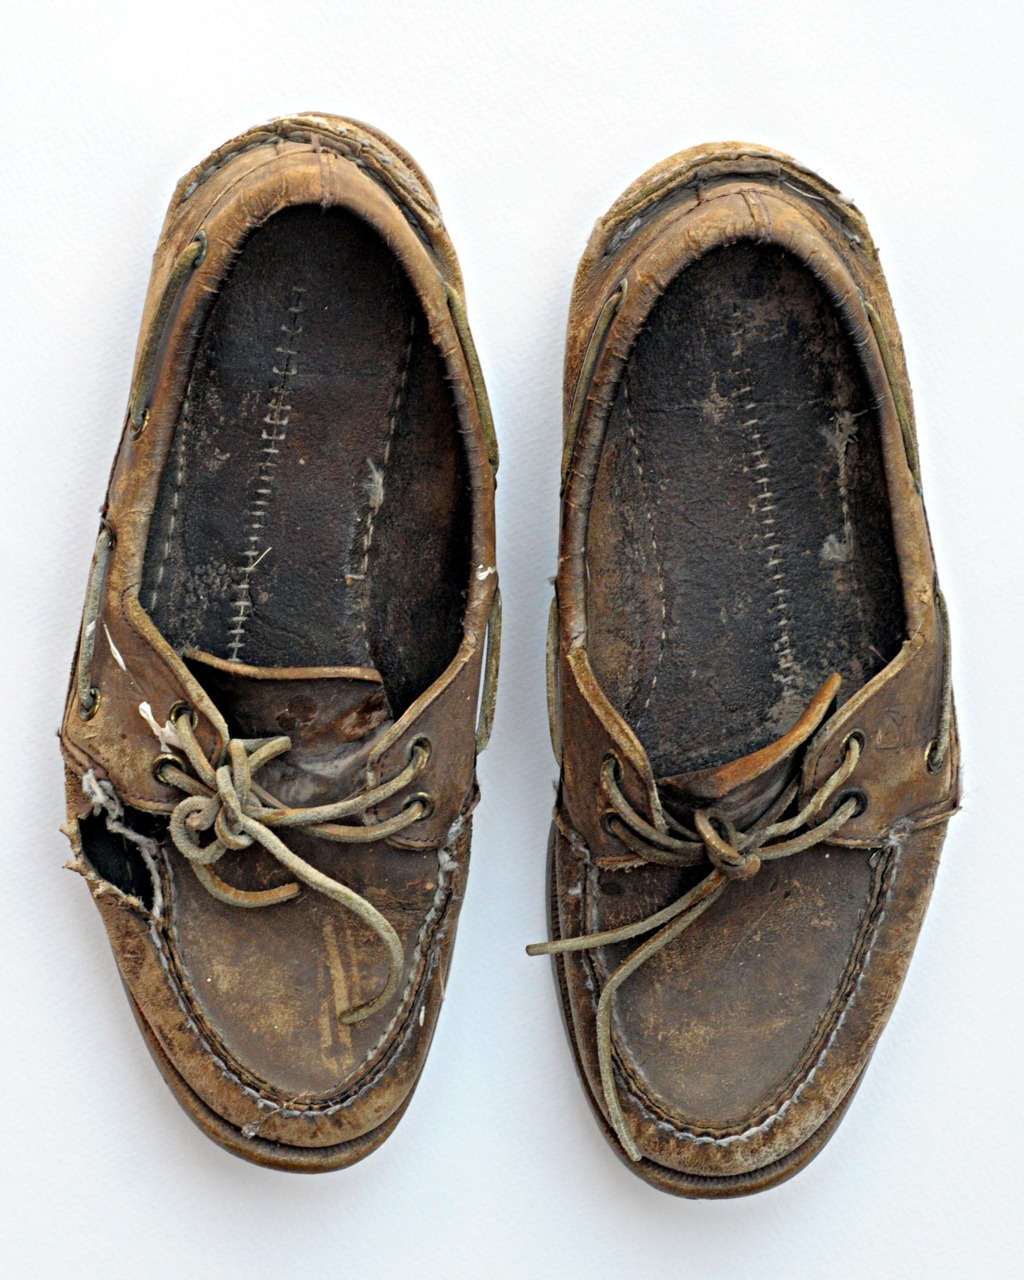 i hope my boat shoes one day get like this.